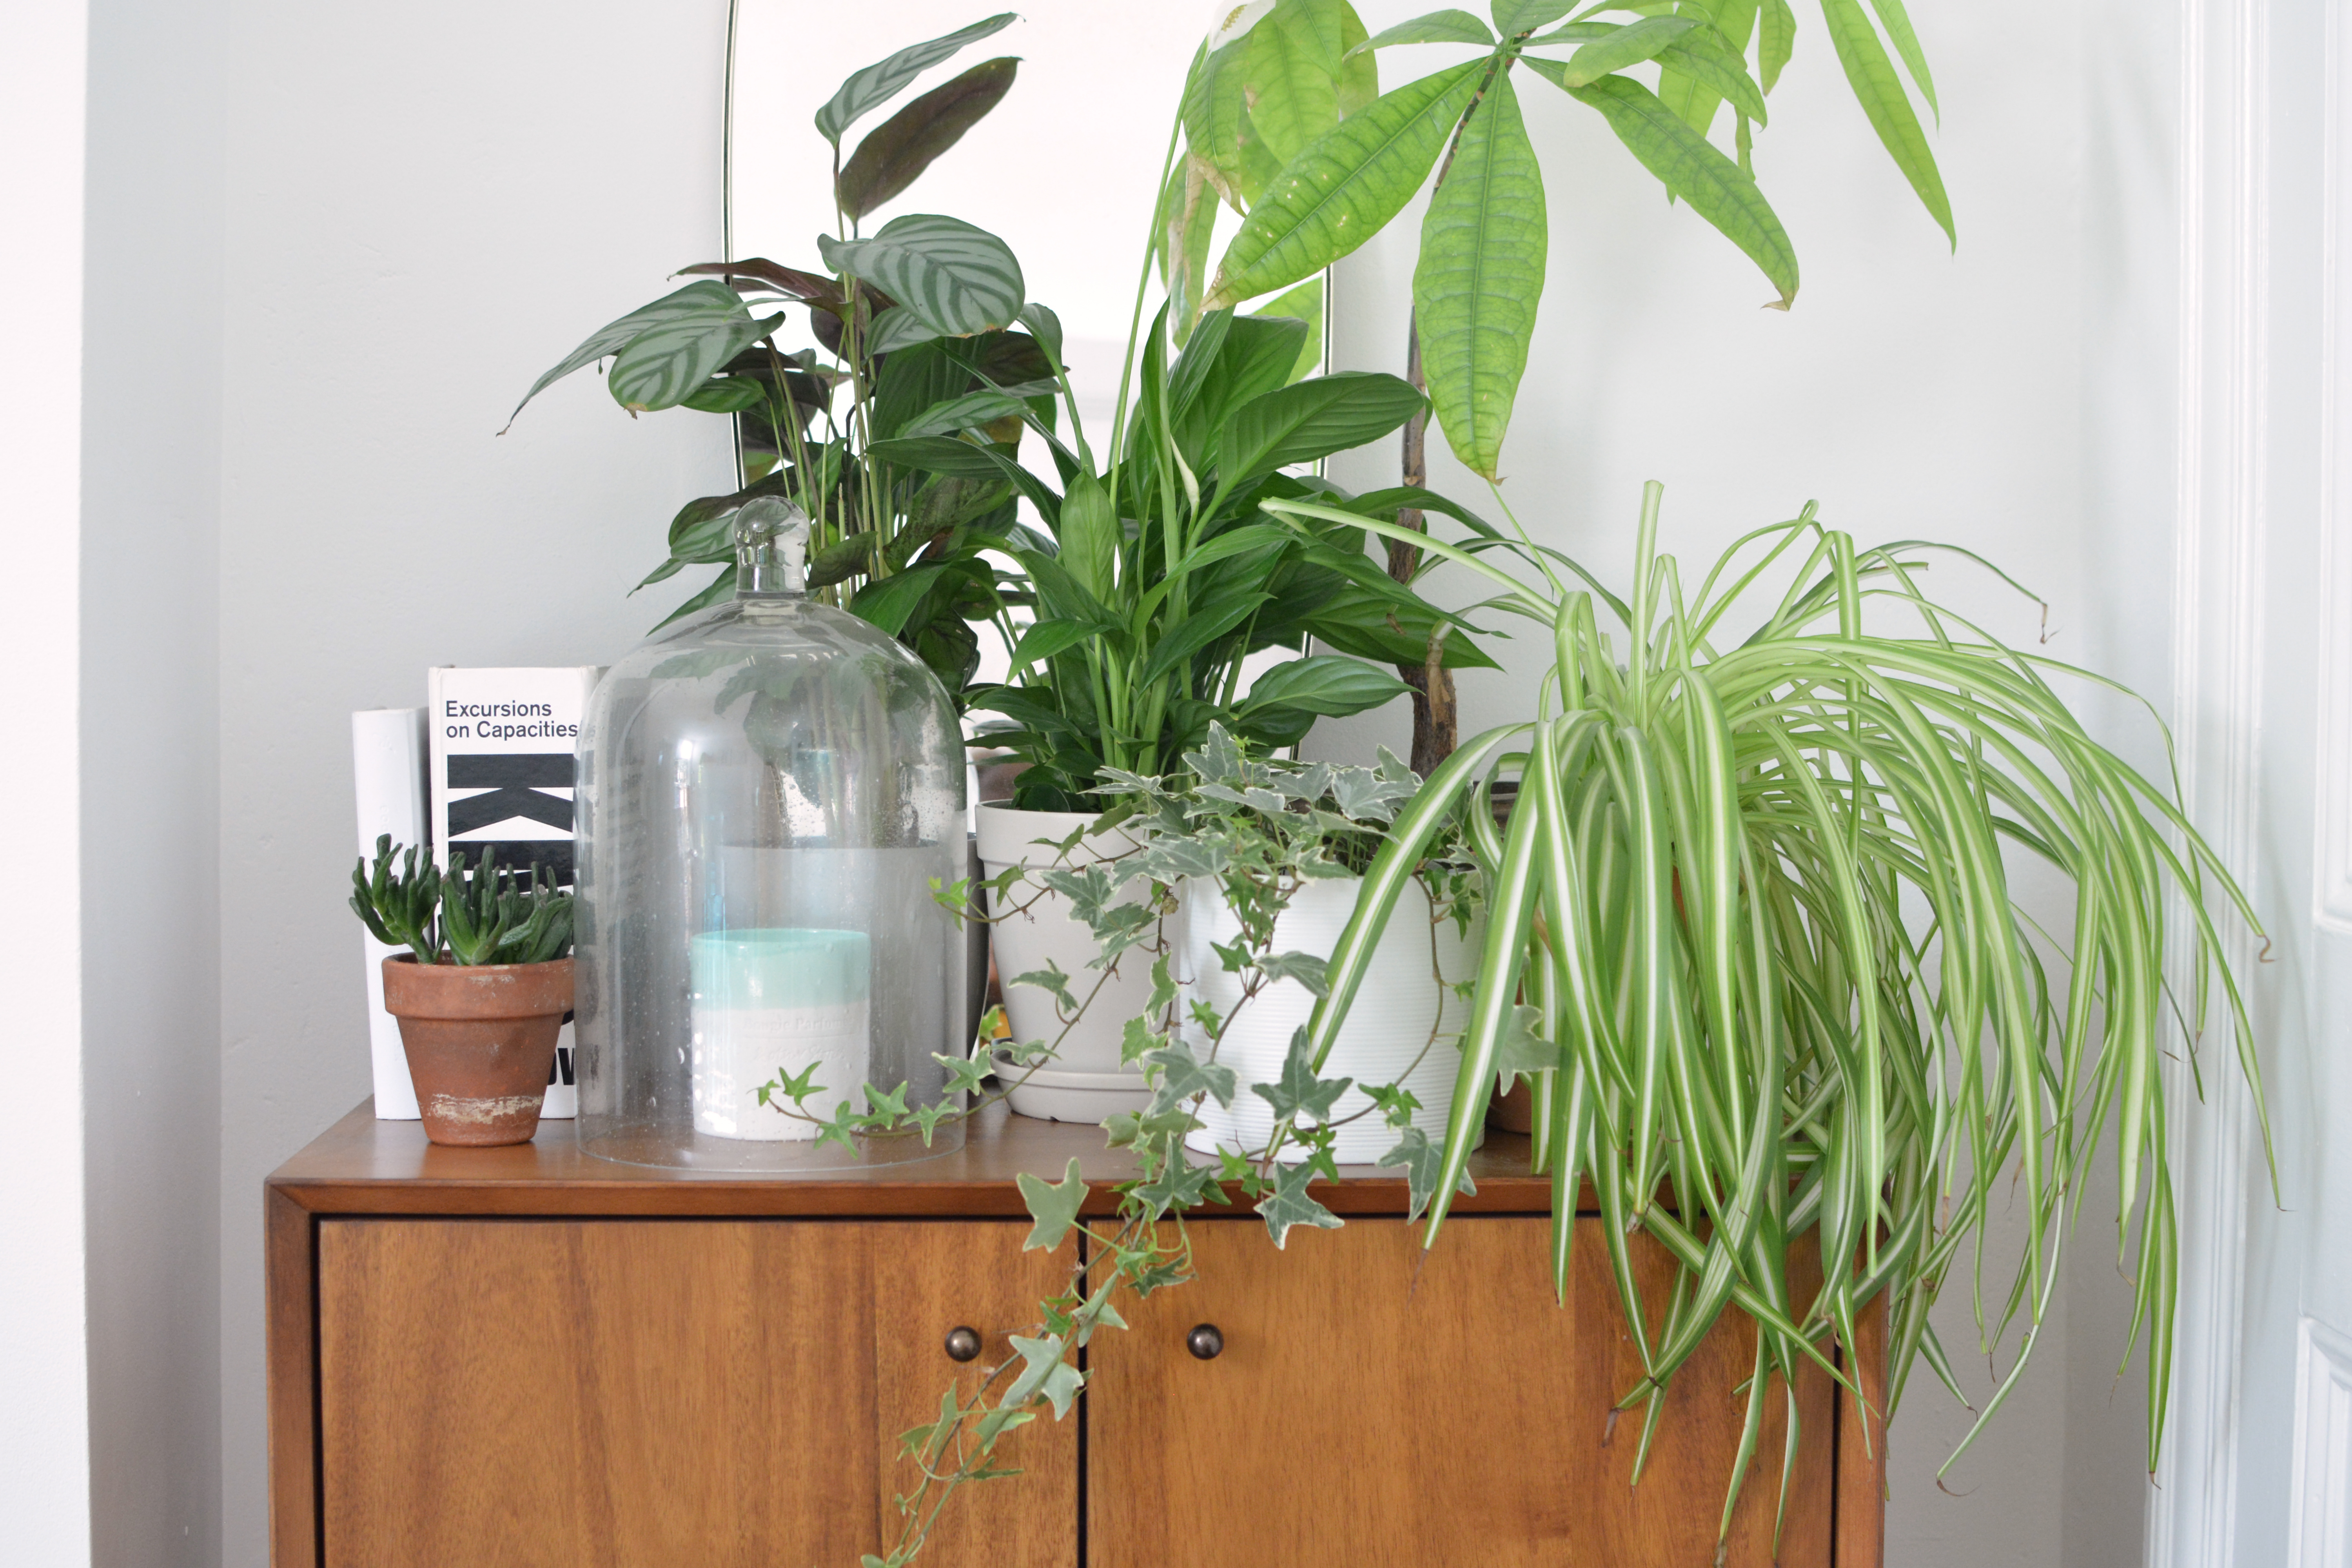 How to Use Houseplants as Decorative Accents (4 Ideas to Get You Started)